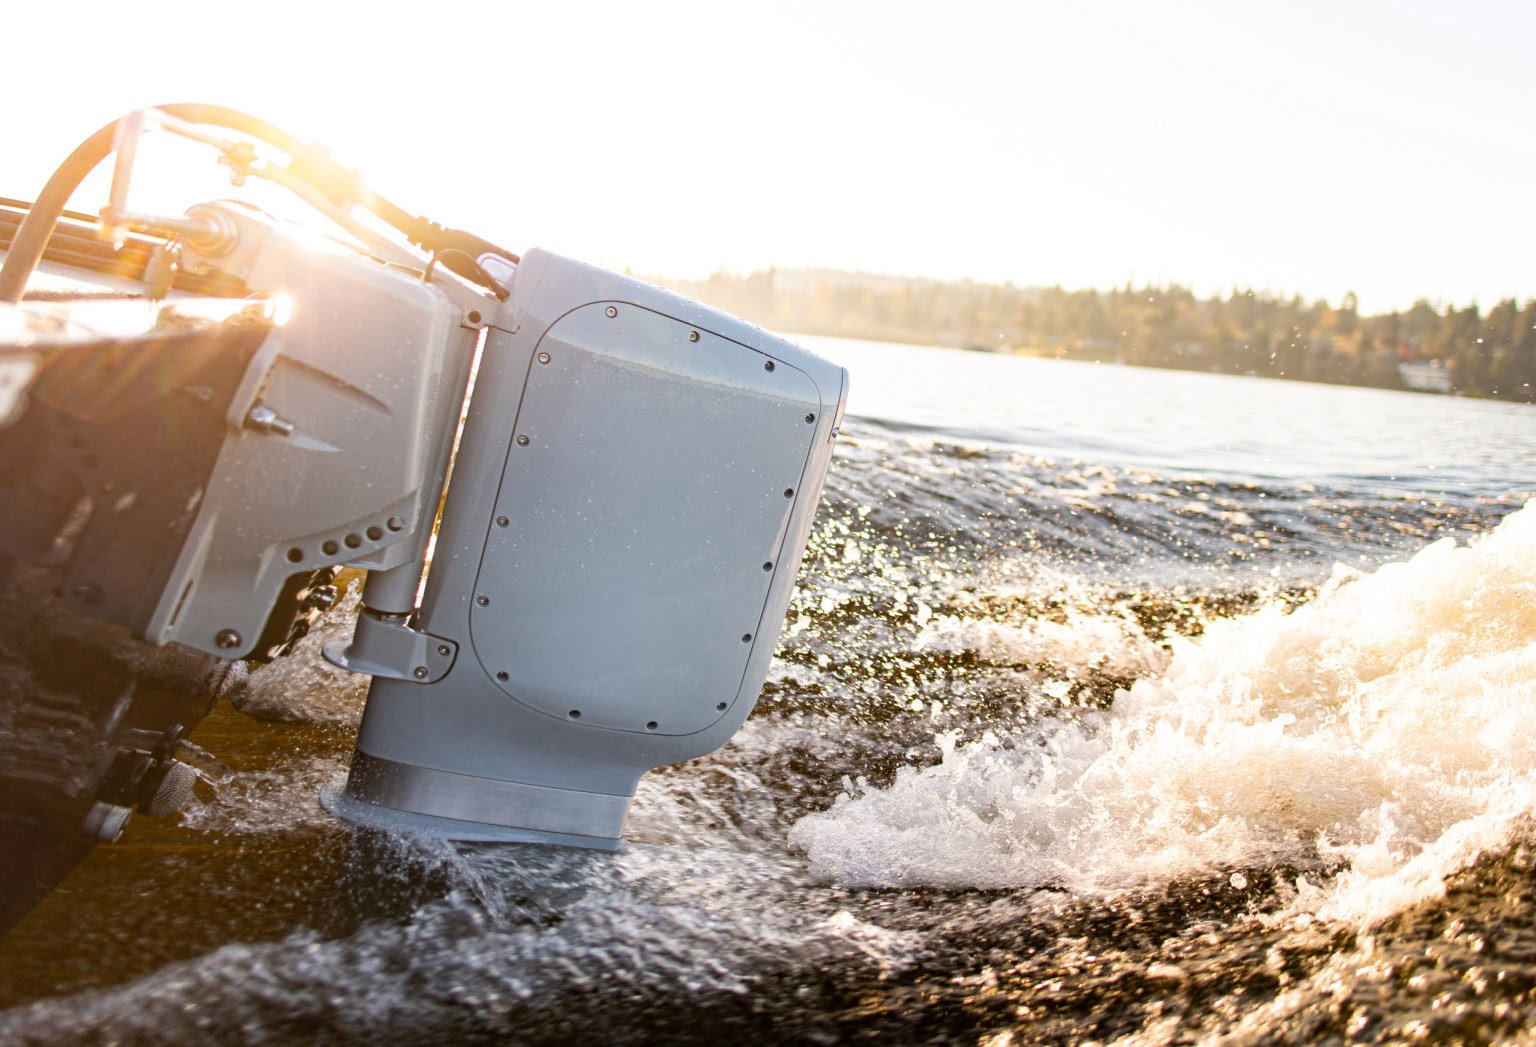 Pure Watercraft branches out into boat construction